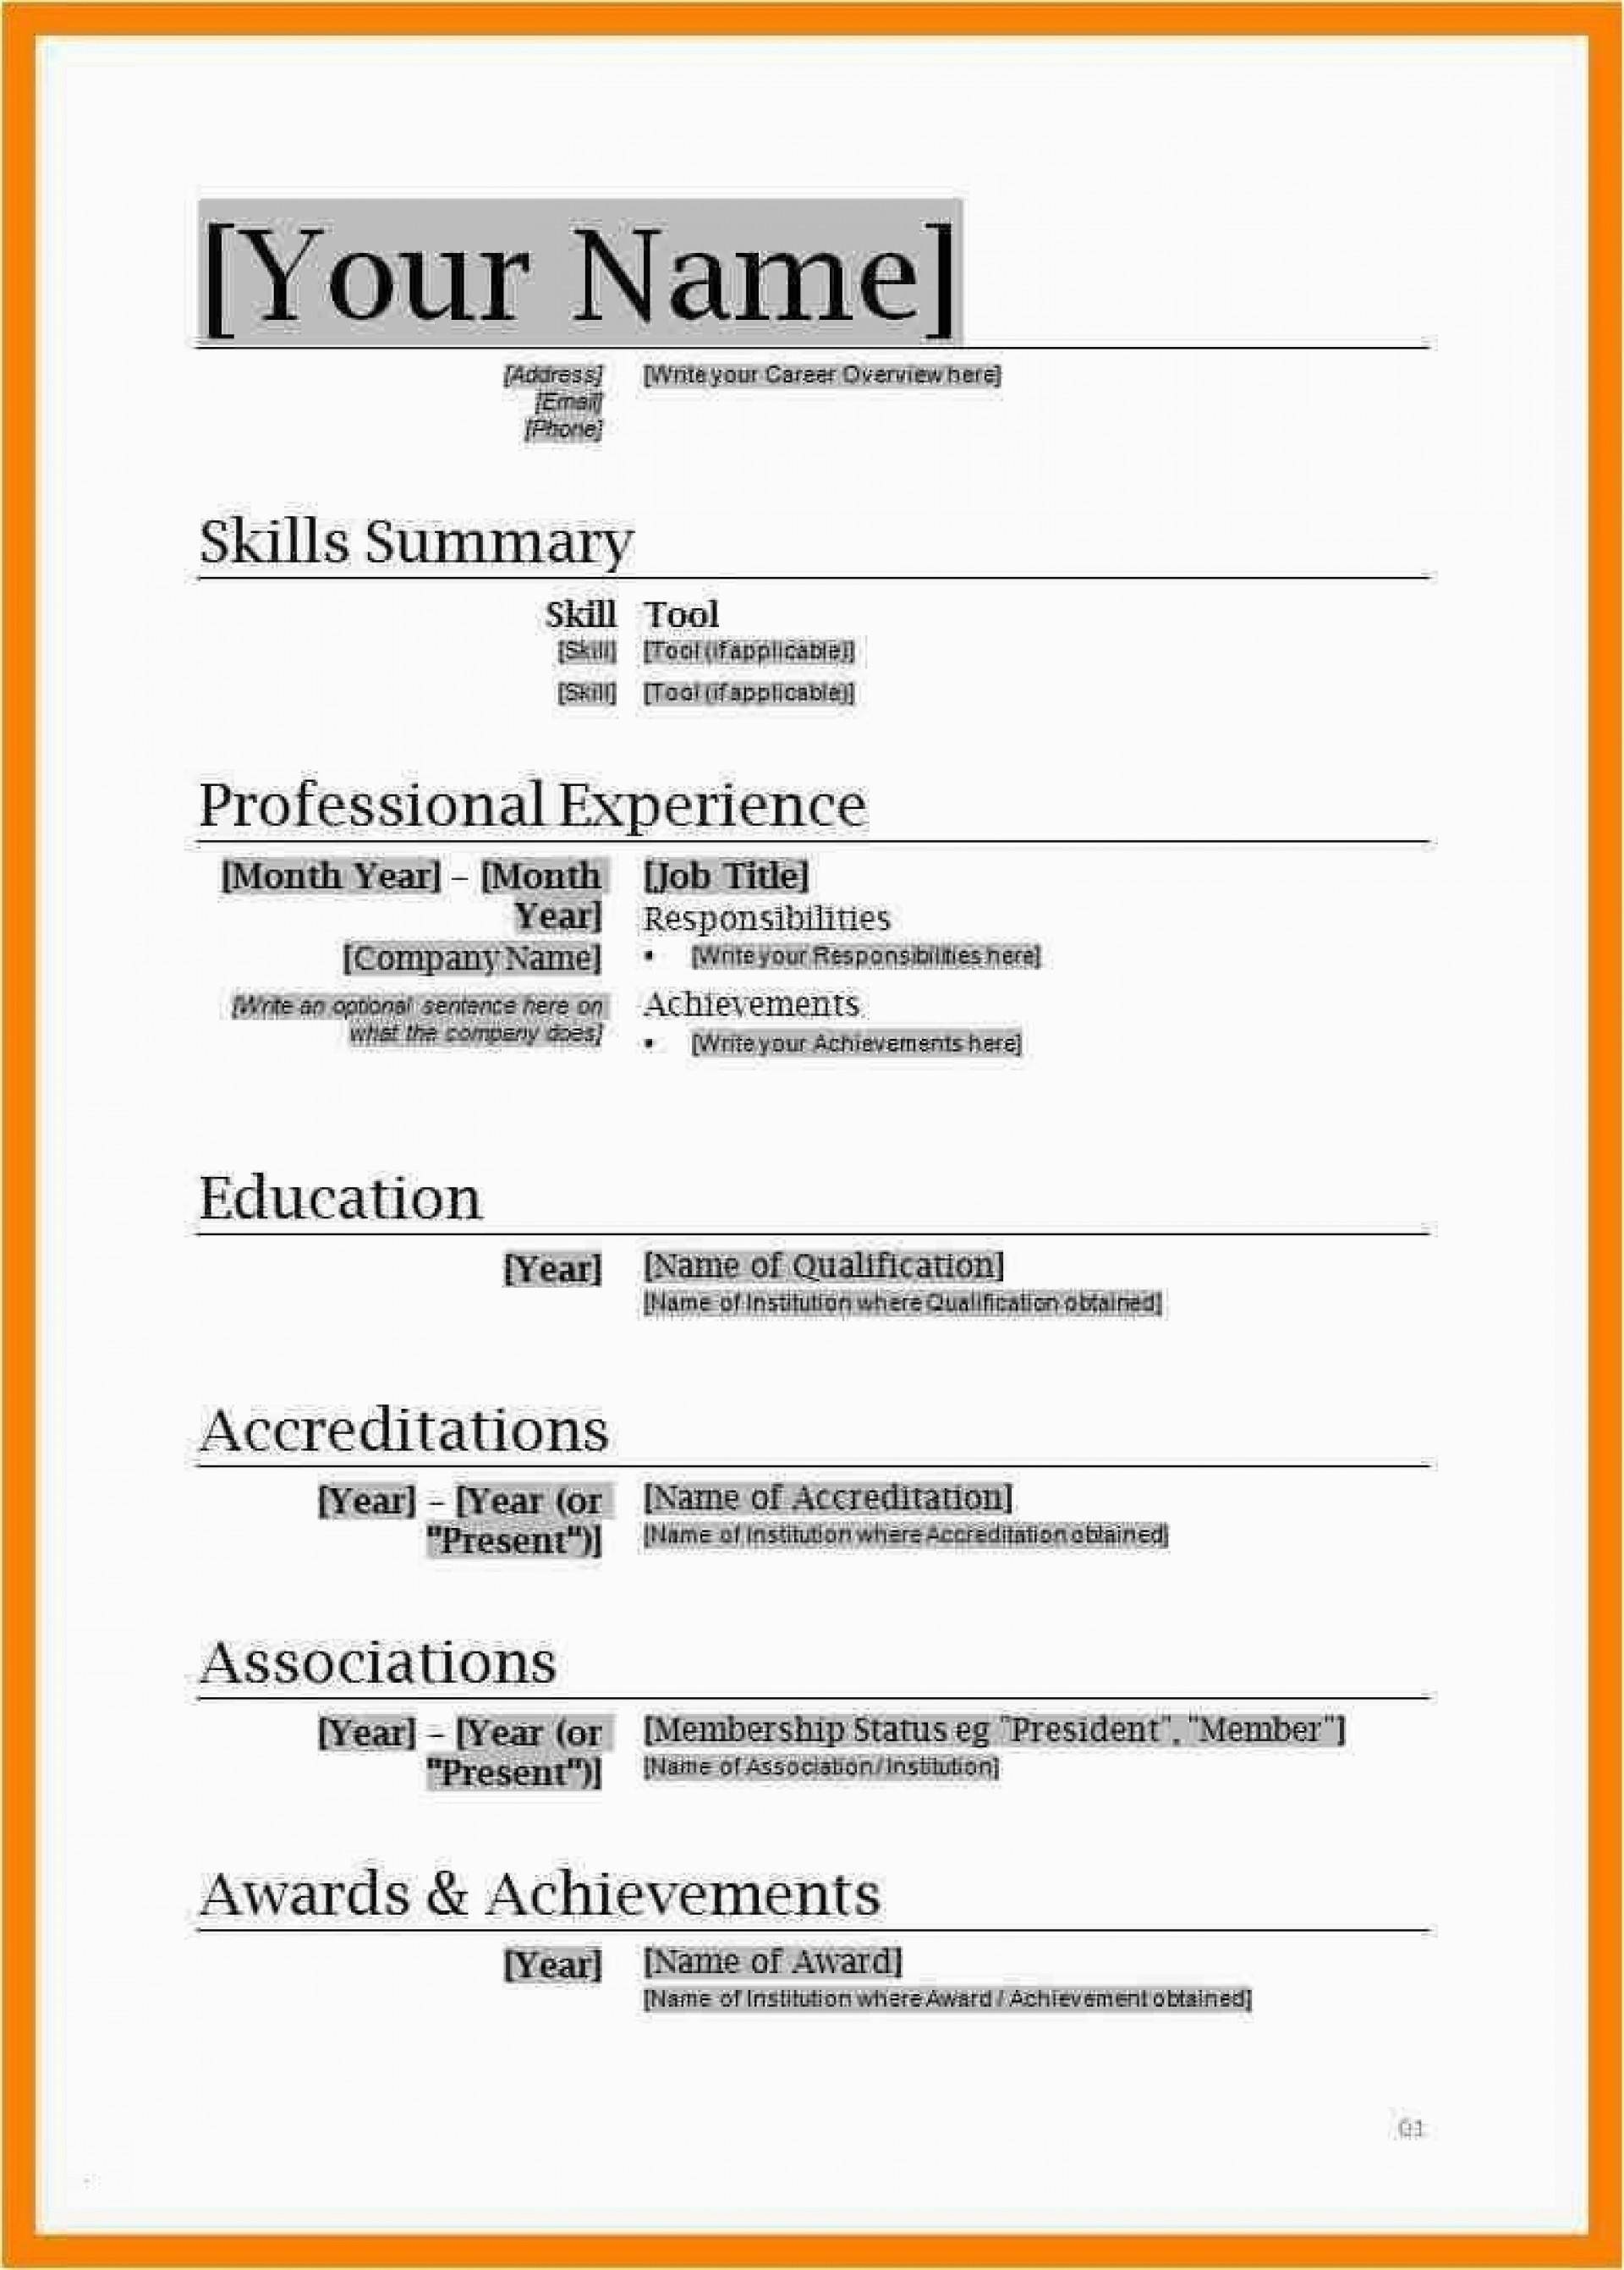 004 Amazing Entry Level Resume Template Word Download Sample 1920